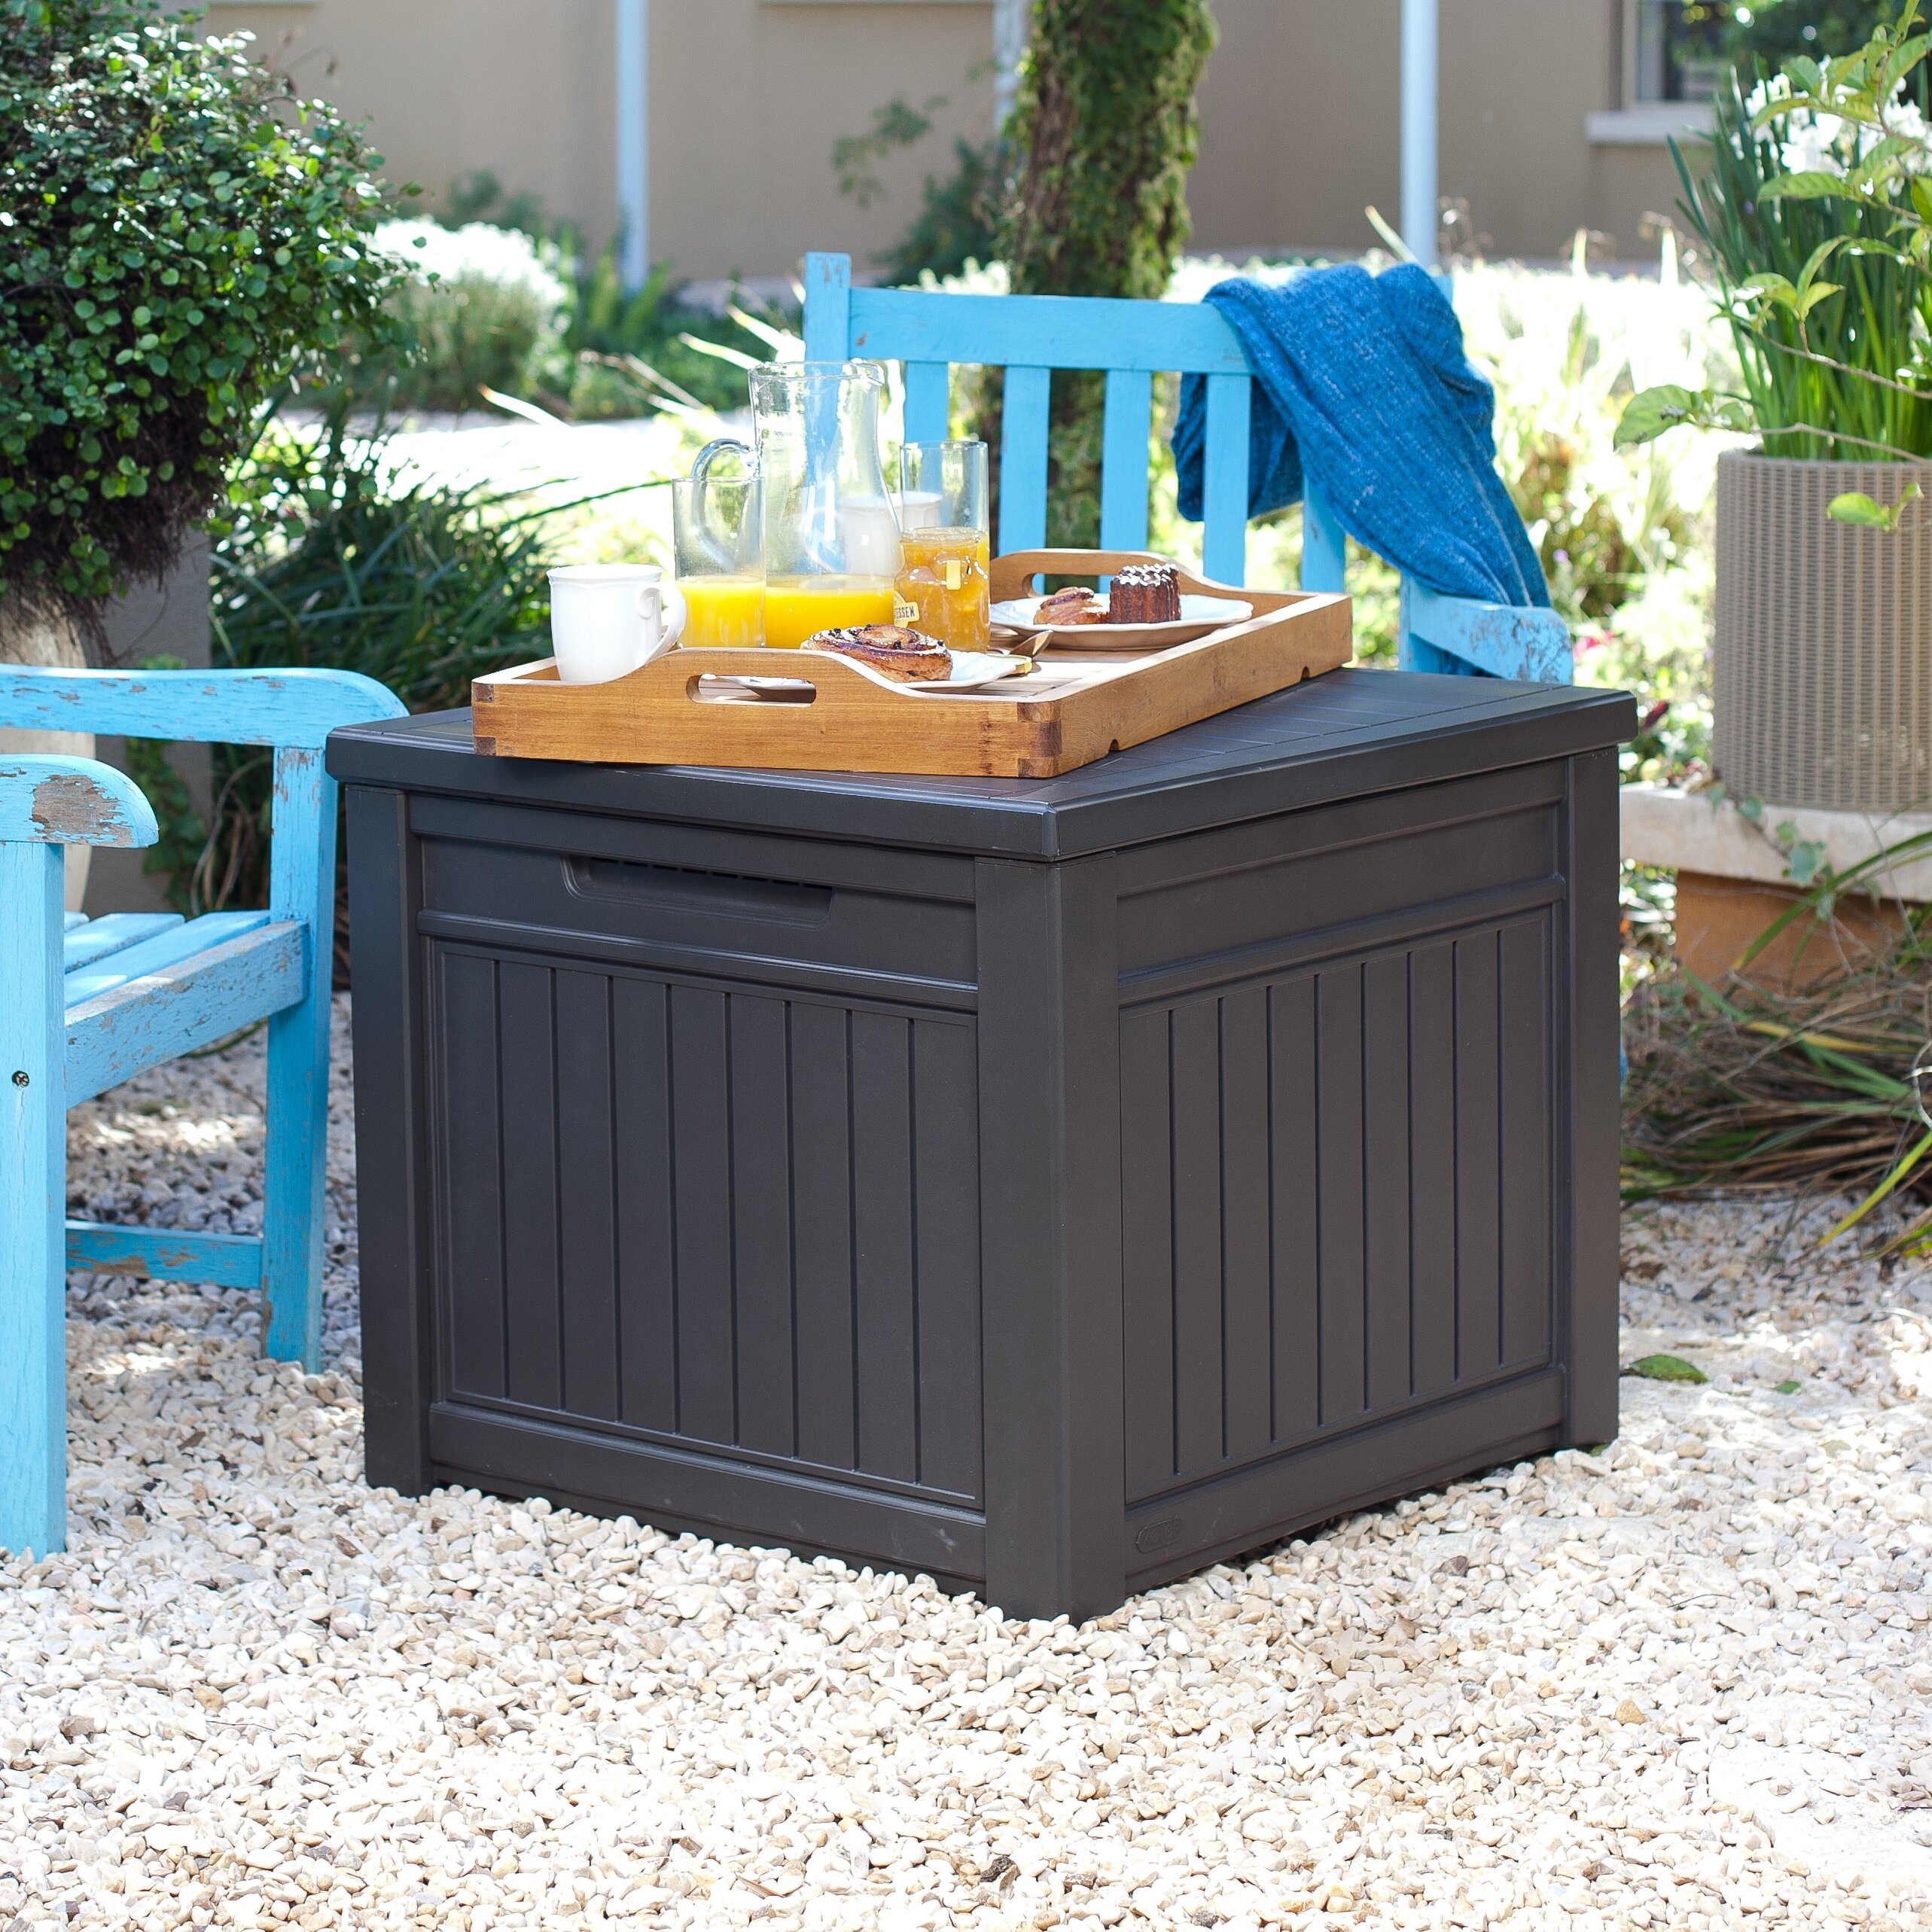 Keter 55 Gallon Resin Storage Cube Deck Box With Table Top